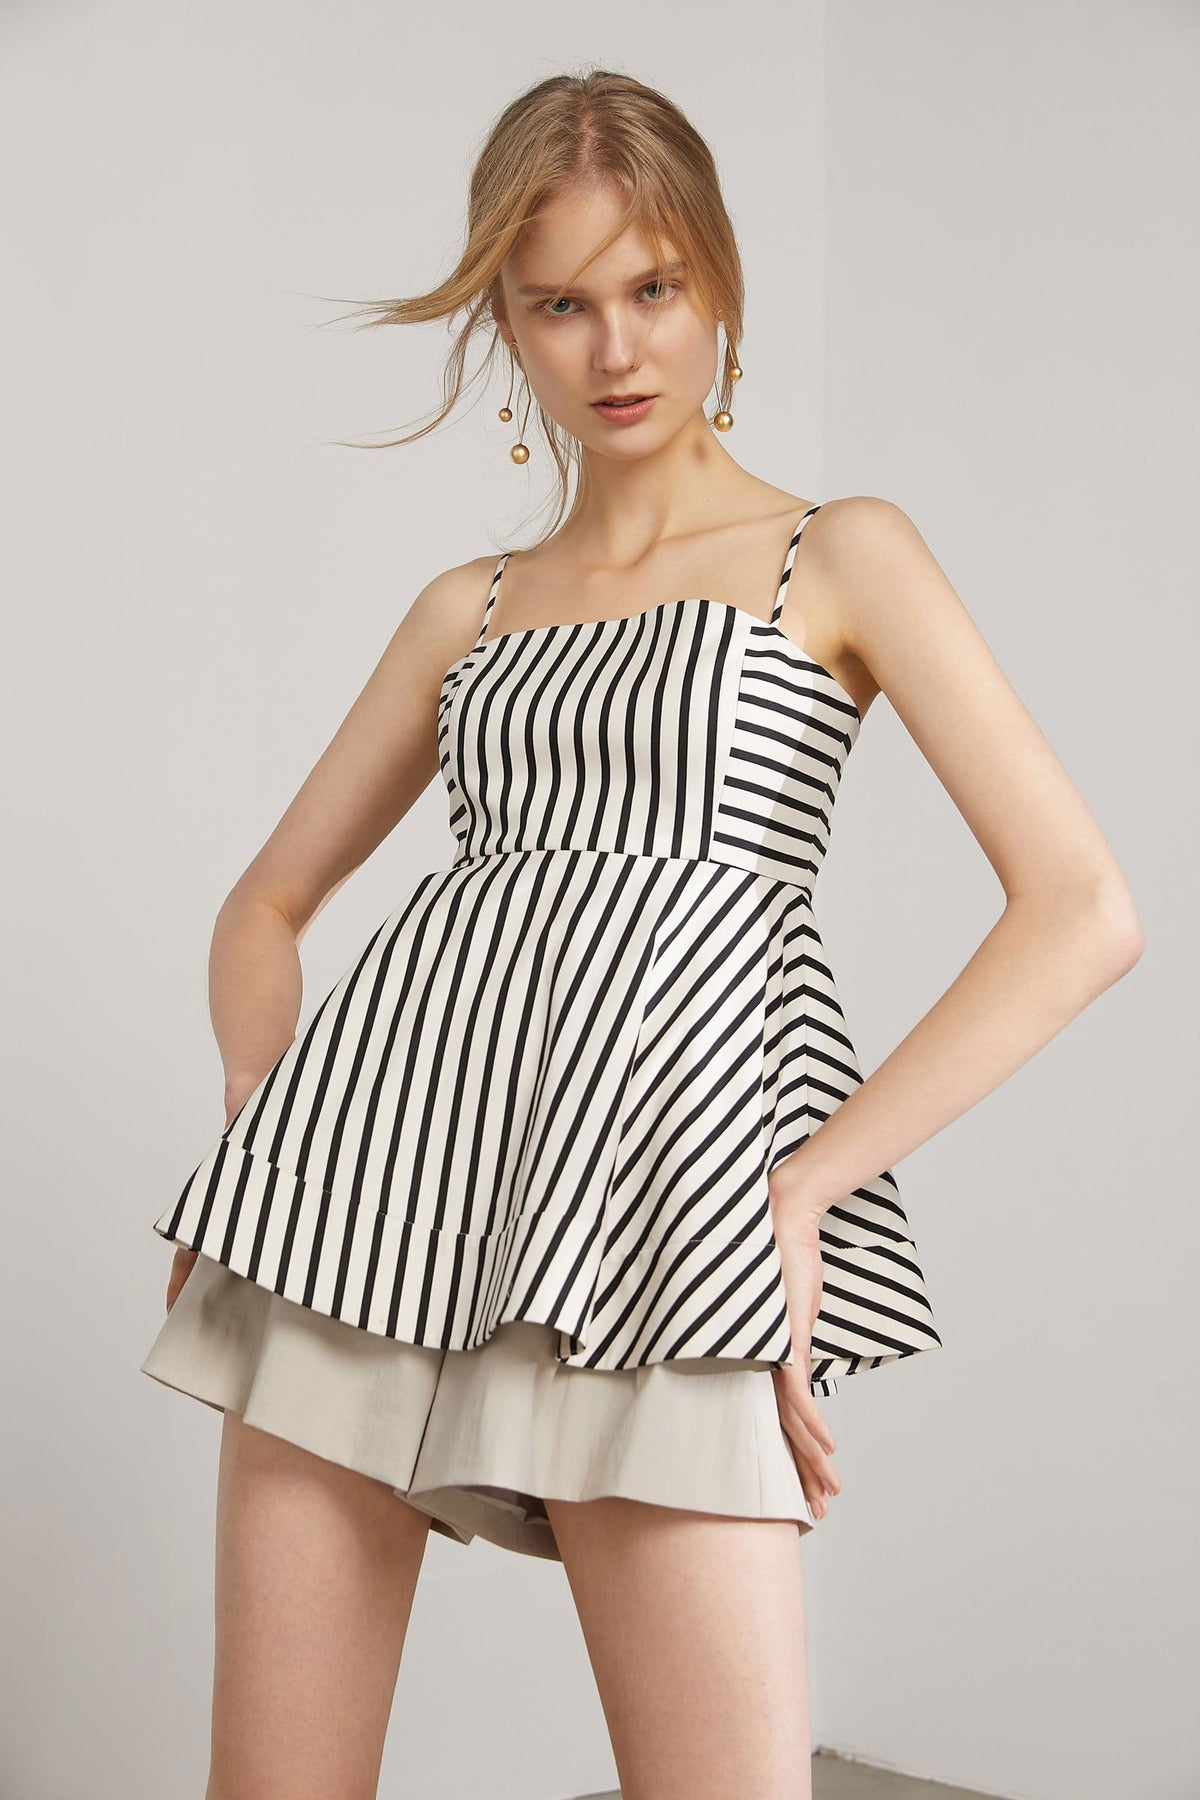 Oksana Striped Peplum Top